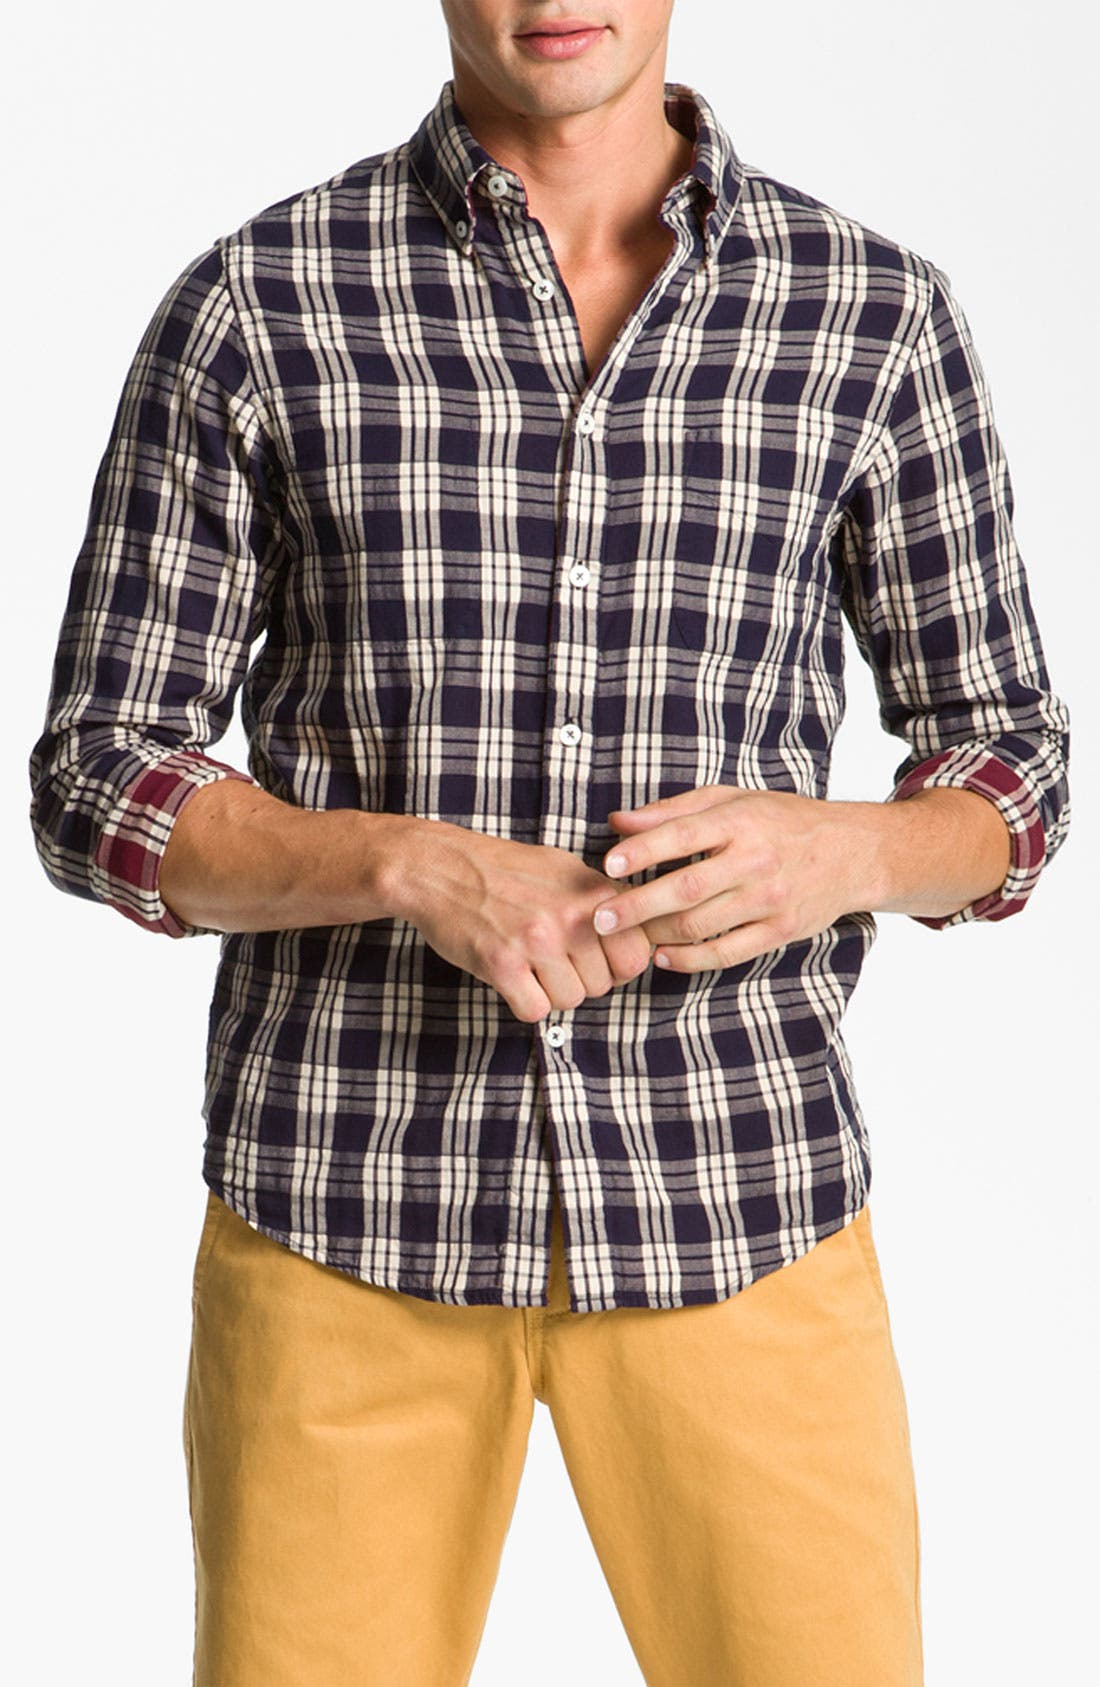 Alternate Image 1 Selected - Ben Sherman 'Clerkenwell' Reversible Plaid Woven Shirt